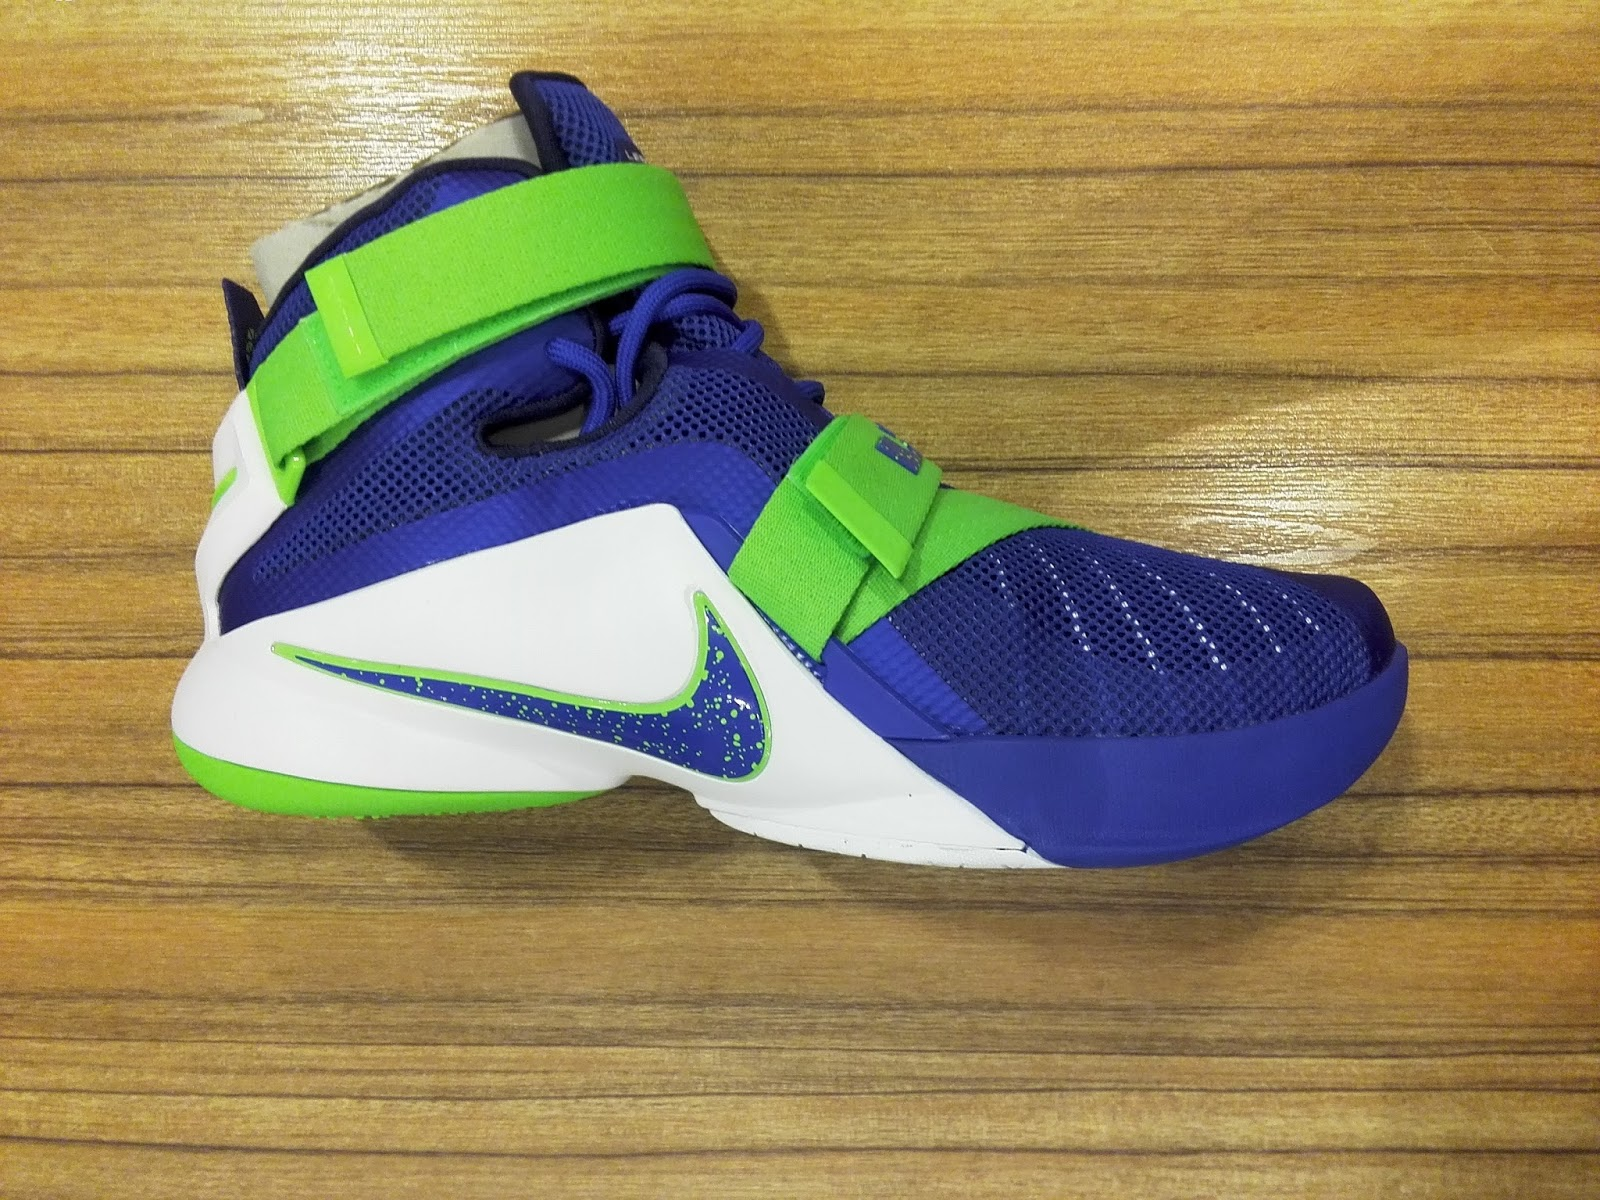 buy cheap d51bf 64936 Zoom Soldier 9 Sprite available at Planet Sports  Analykix